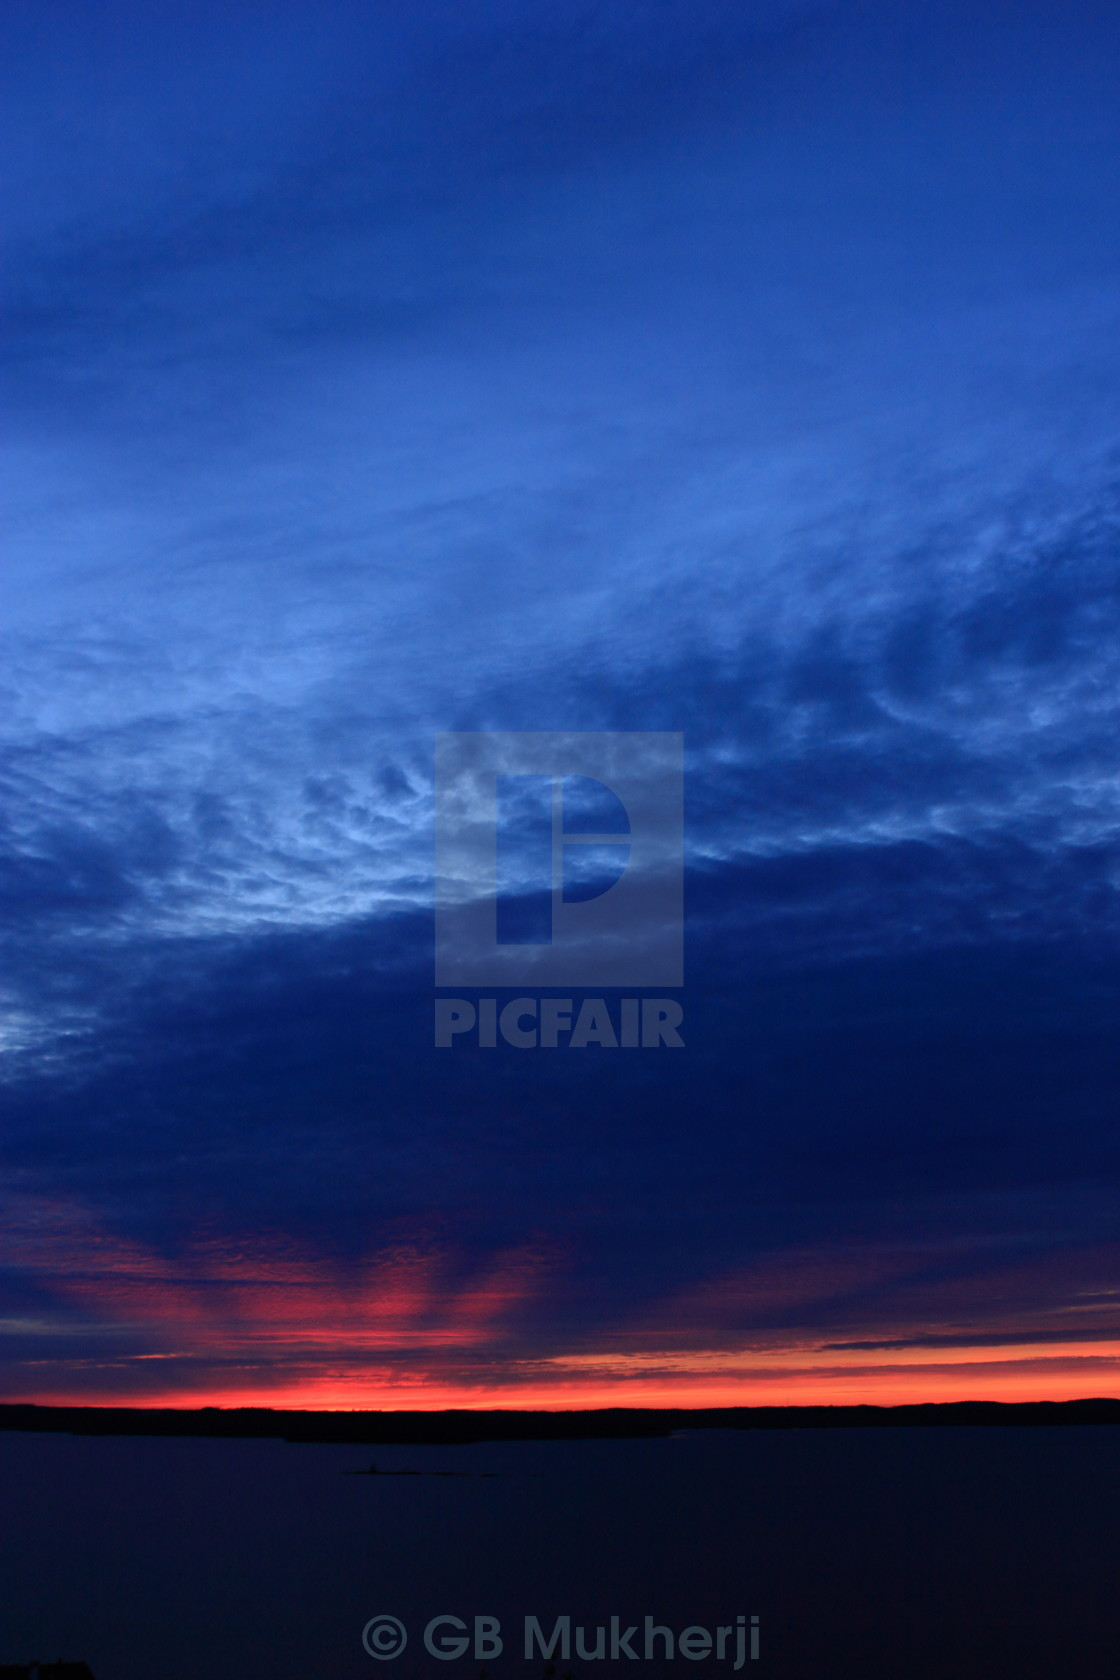 194be0b780717 Midnight sunset - License, download or print for £55.80 | Photos ...